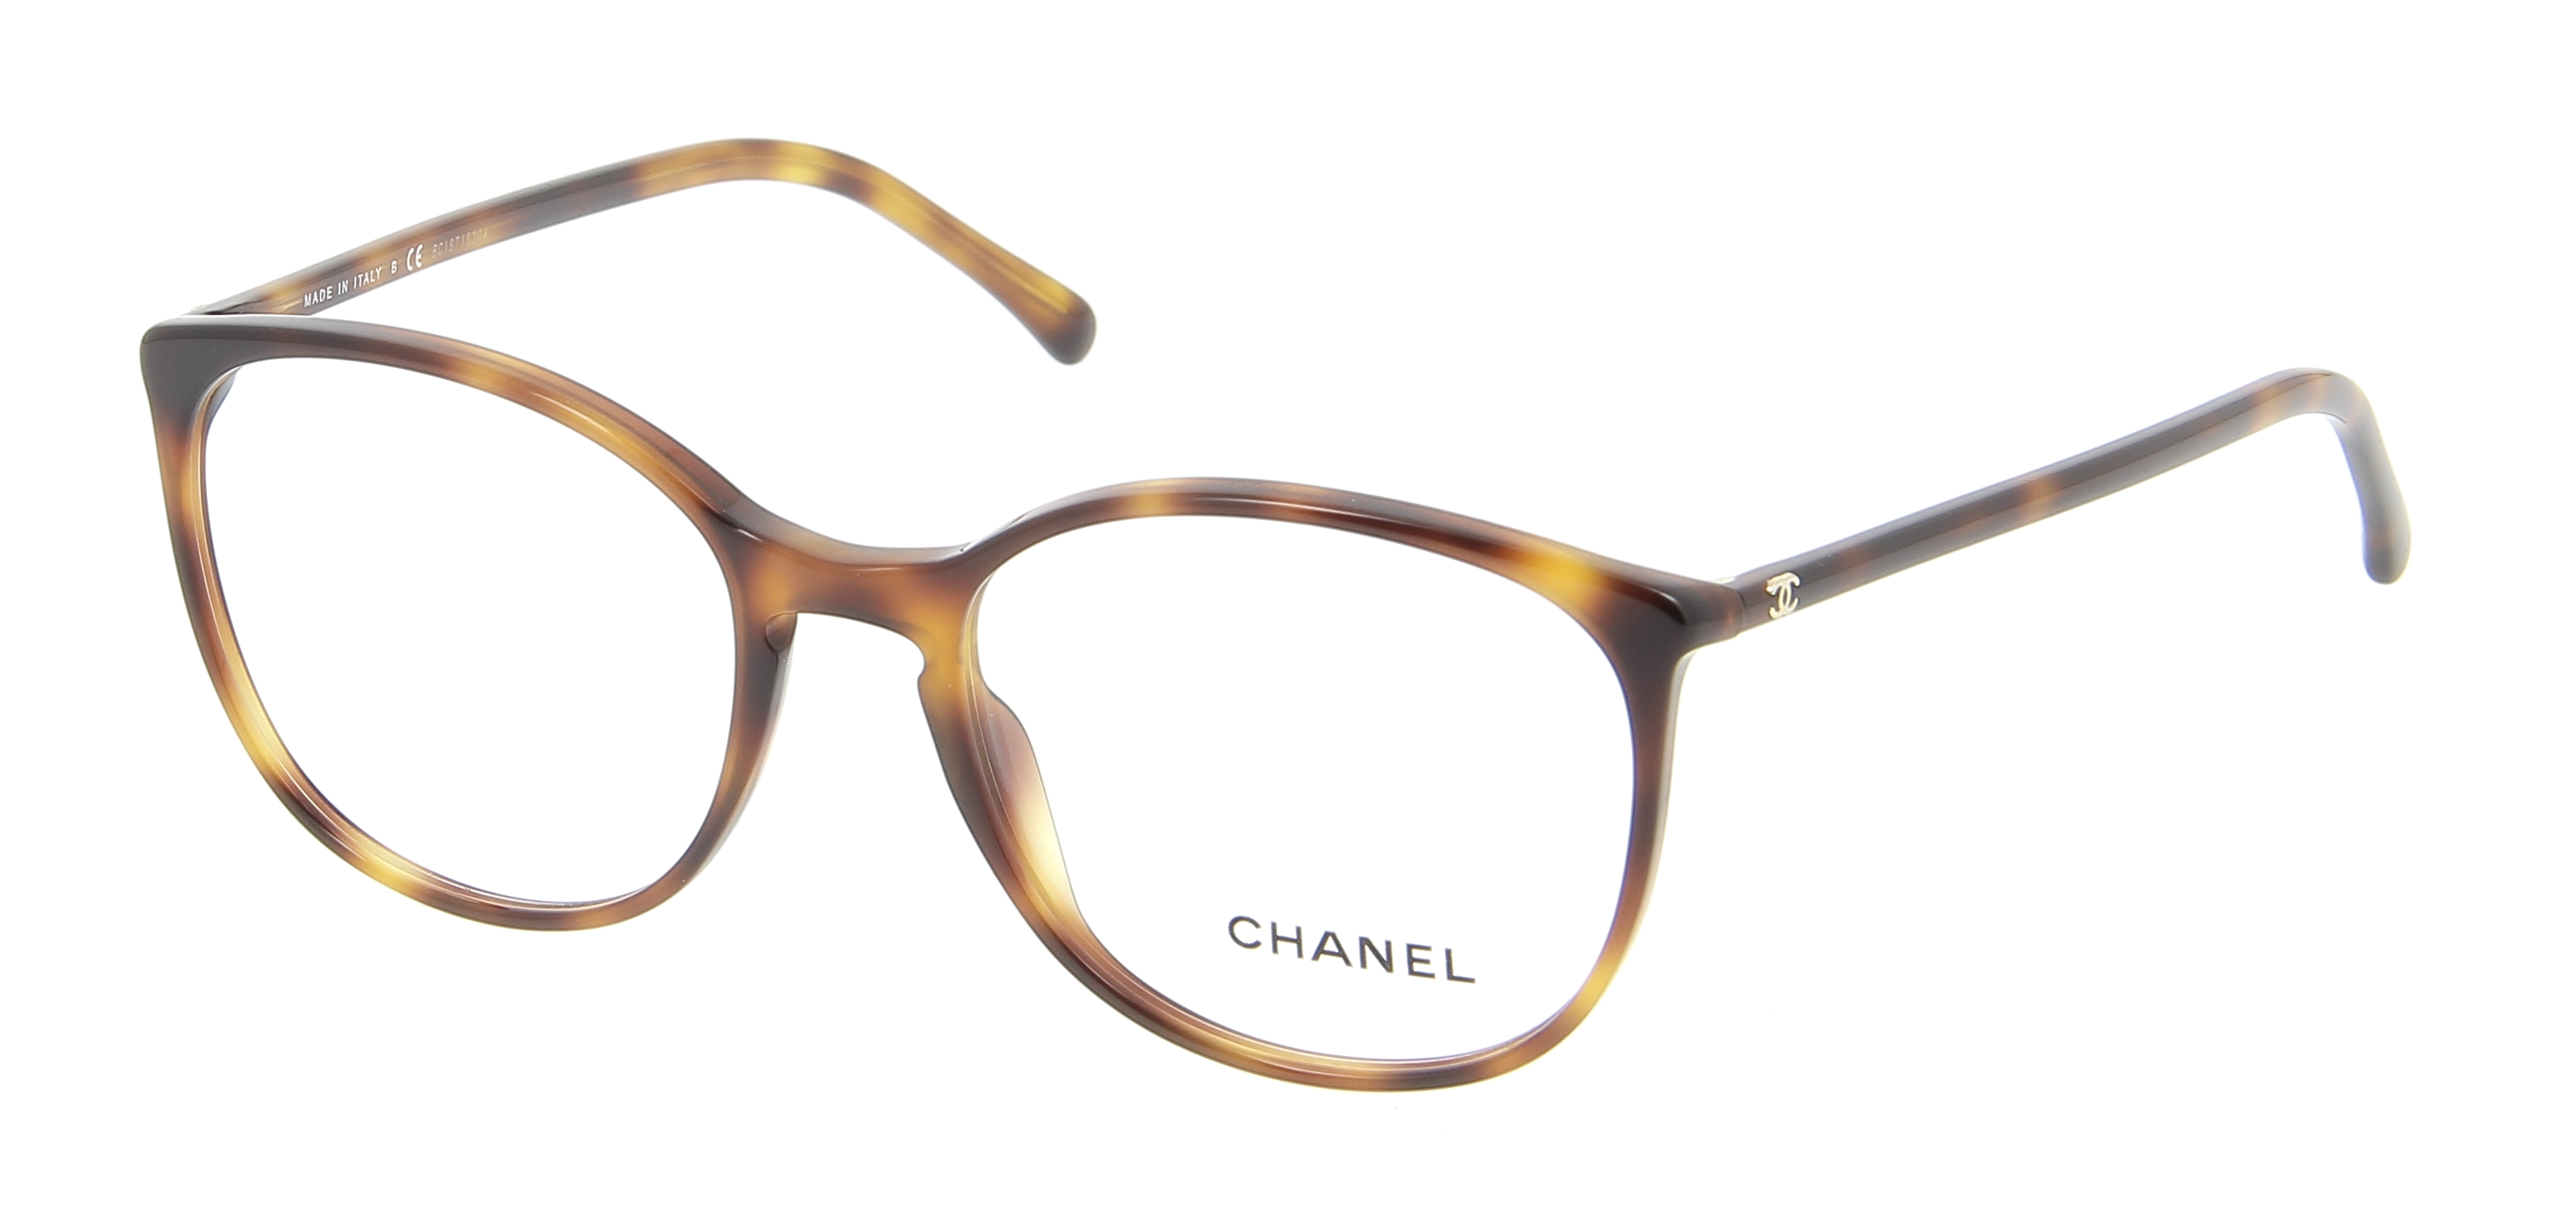 Chanel Glasses Frame Malaysia : Eyeglasses CHANEL CH 3282 1295 52/18 Woman Ecaille Round ...